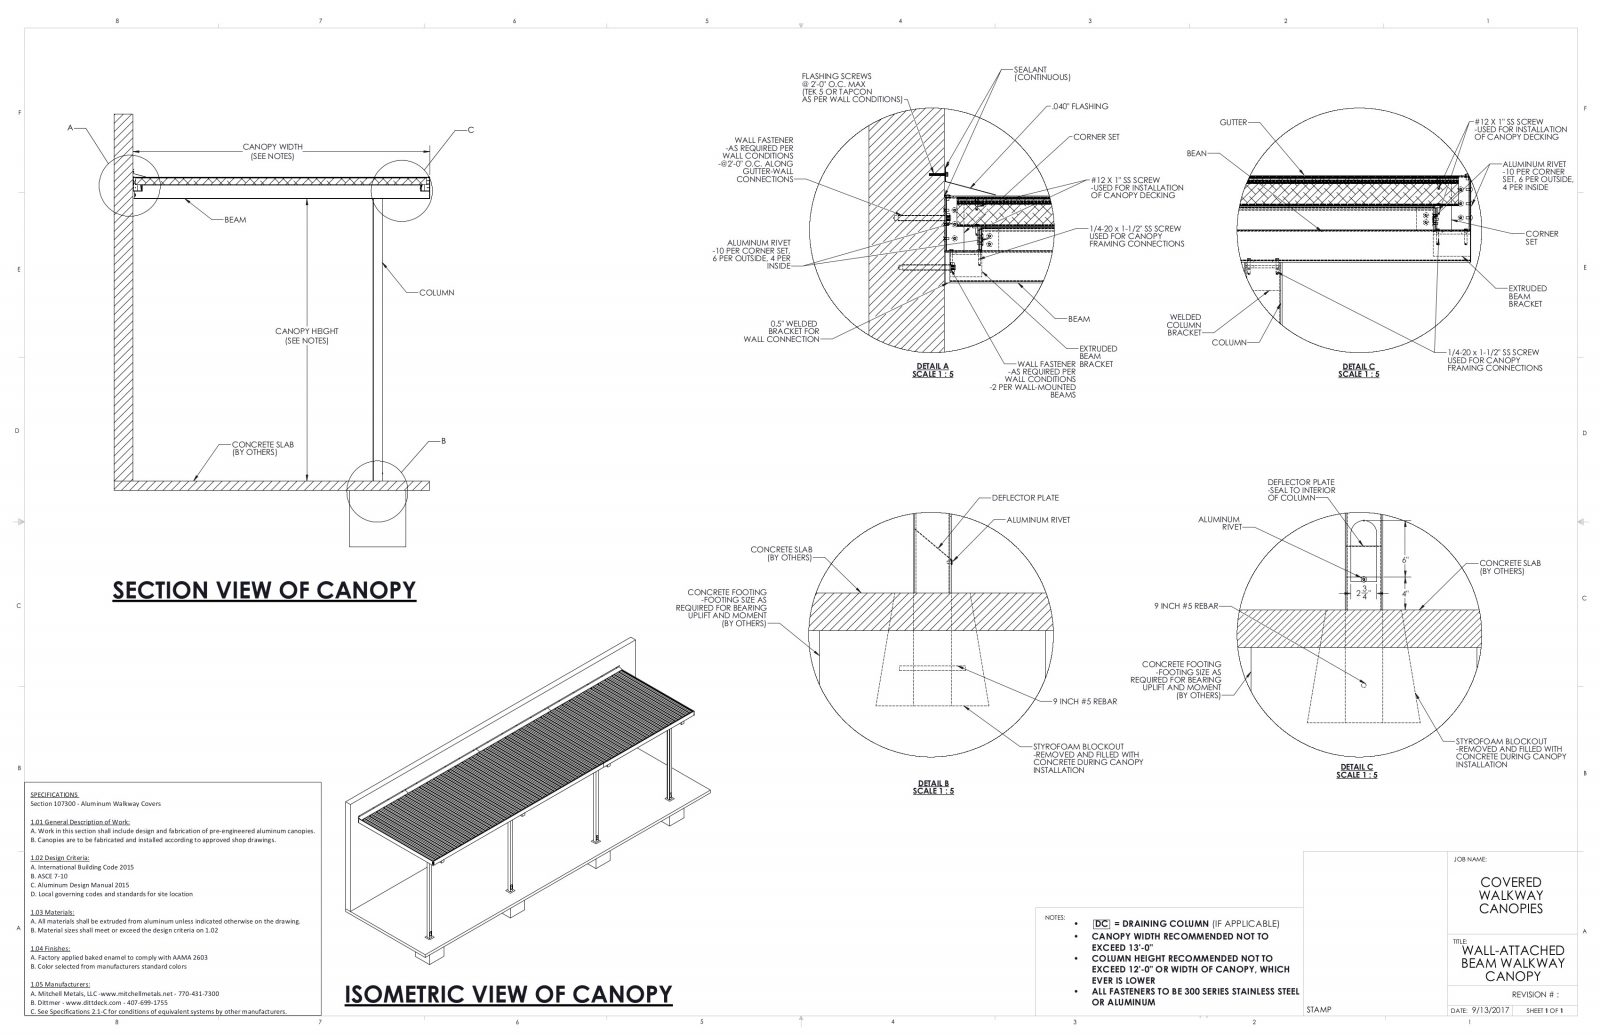 Aluminum canopy designs and specs by Mitchell Metals